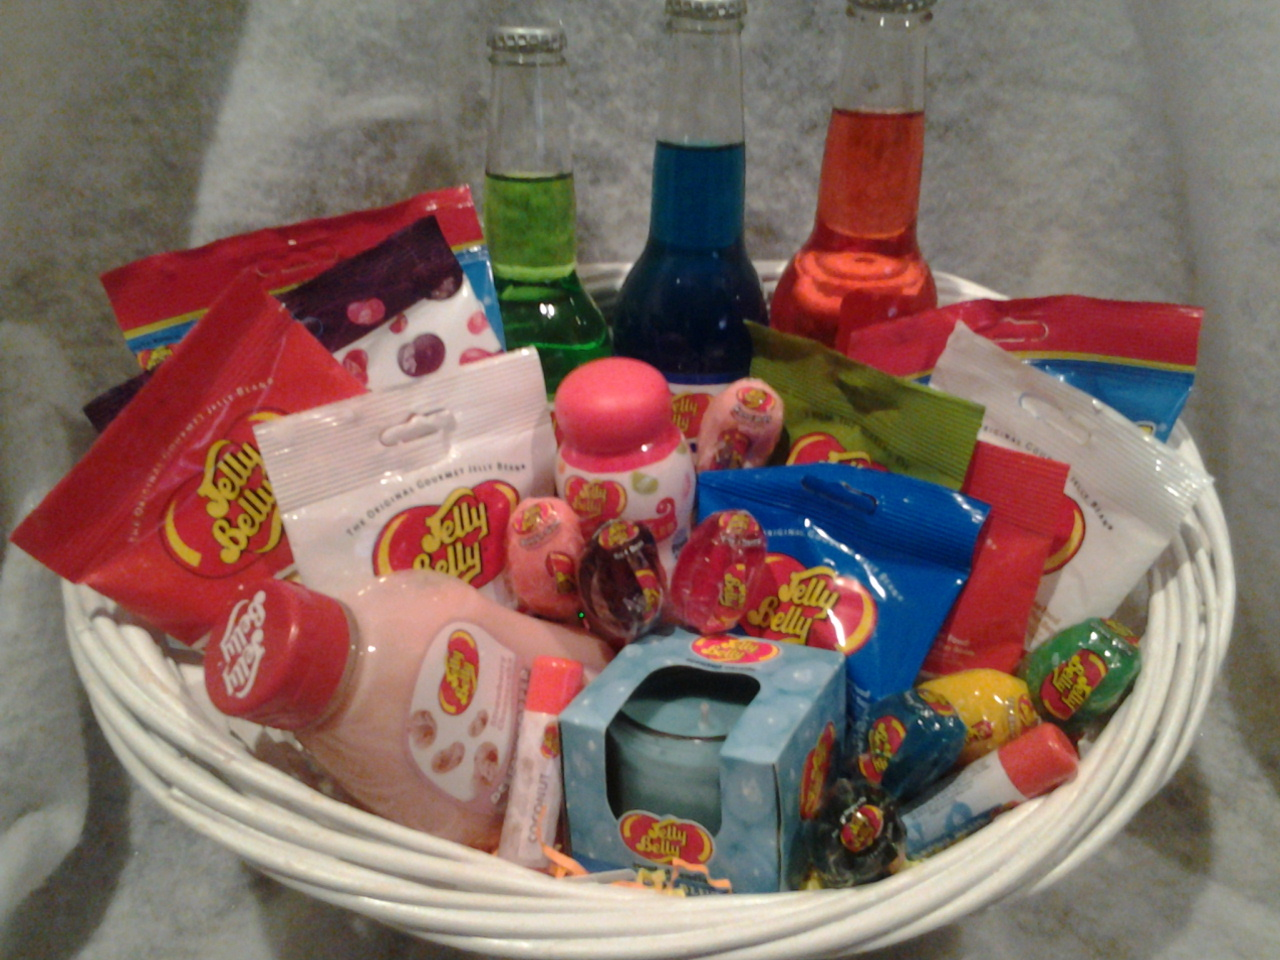 Jelly belly candy gift basket